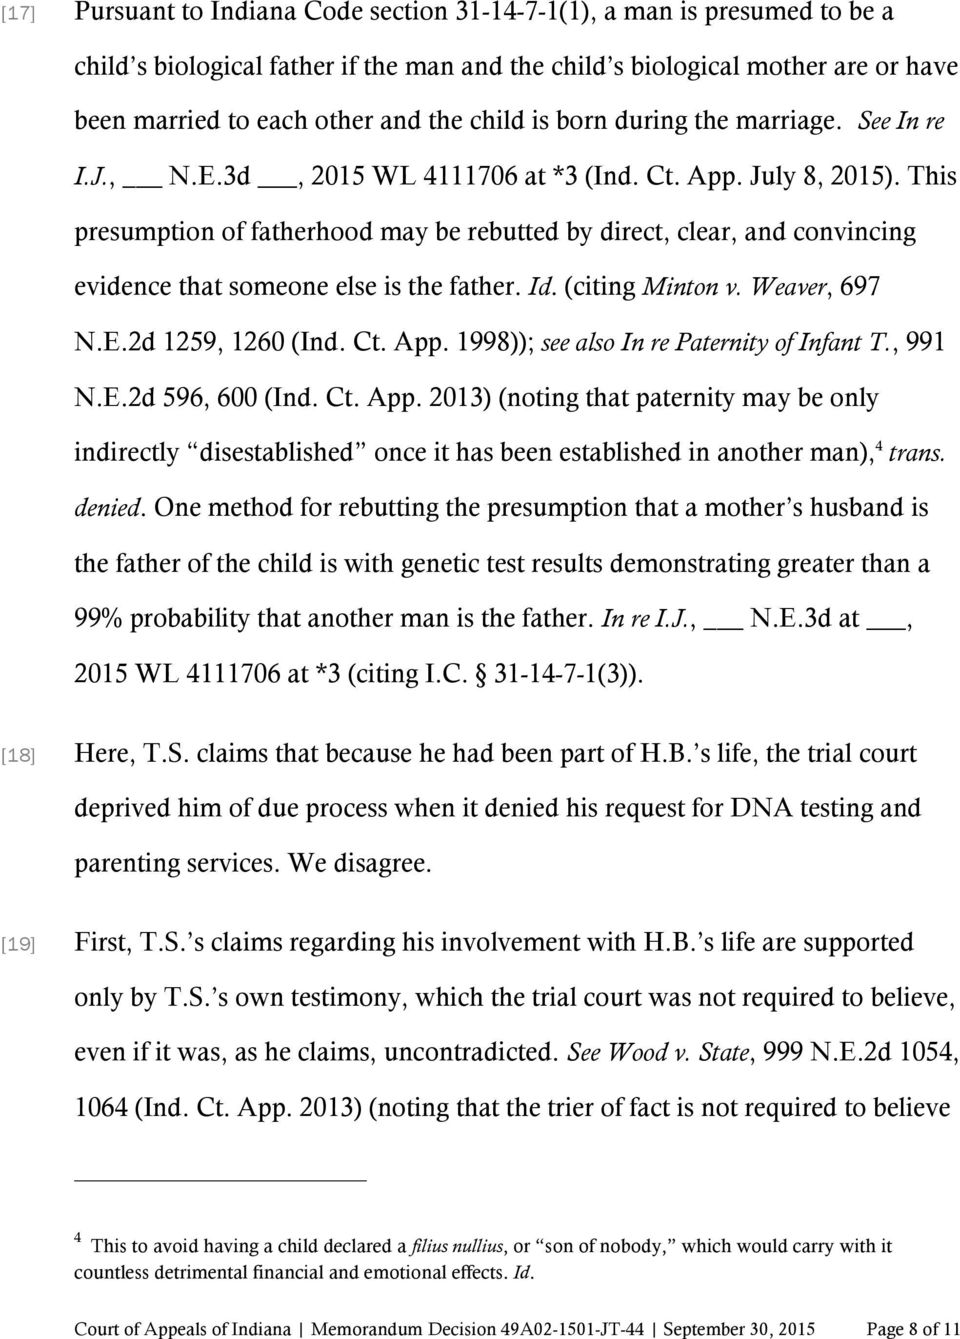 This presumption of fatherhood may be rebutted by direct, clear, and convincing evidence that someone else is the father. Id. (citing Minton v. Weaver, 697 N.E.2d 1259, 1260 (Ind. Ct. App.